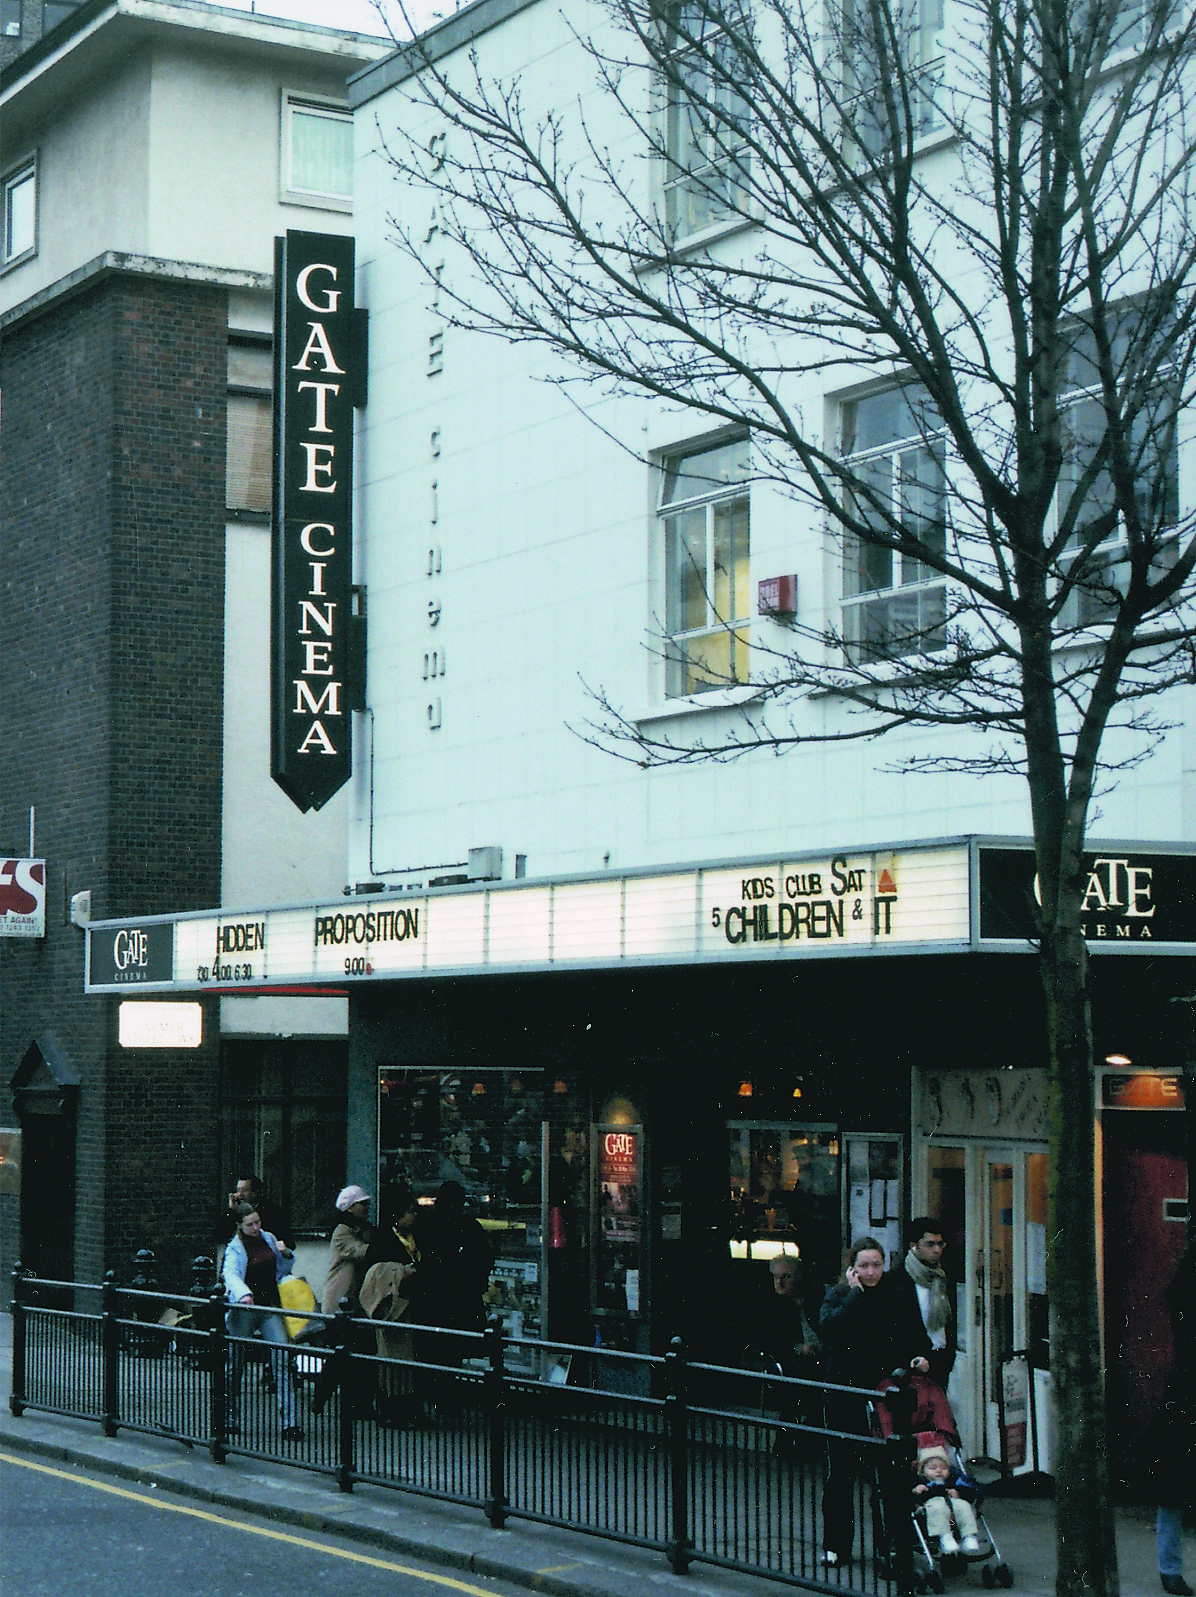 Gate Cinema, Notting Hill